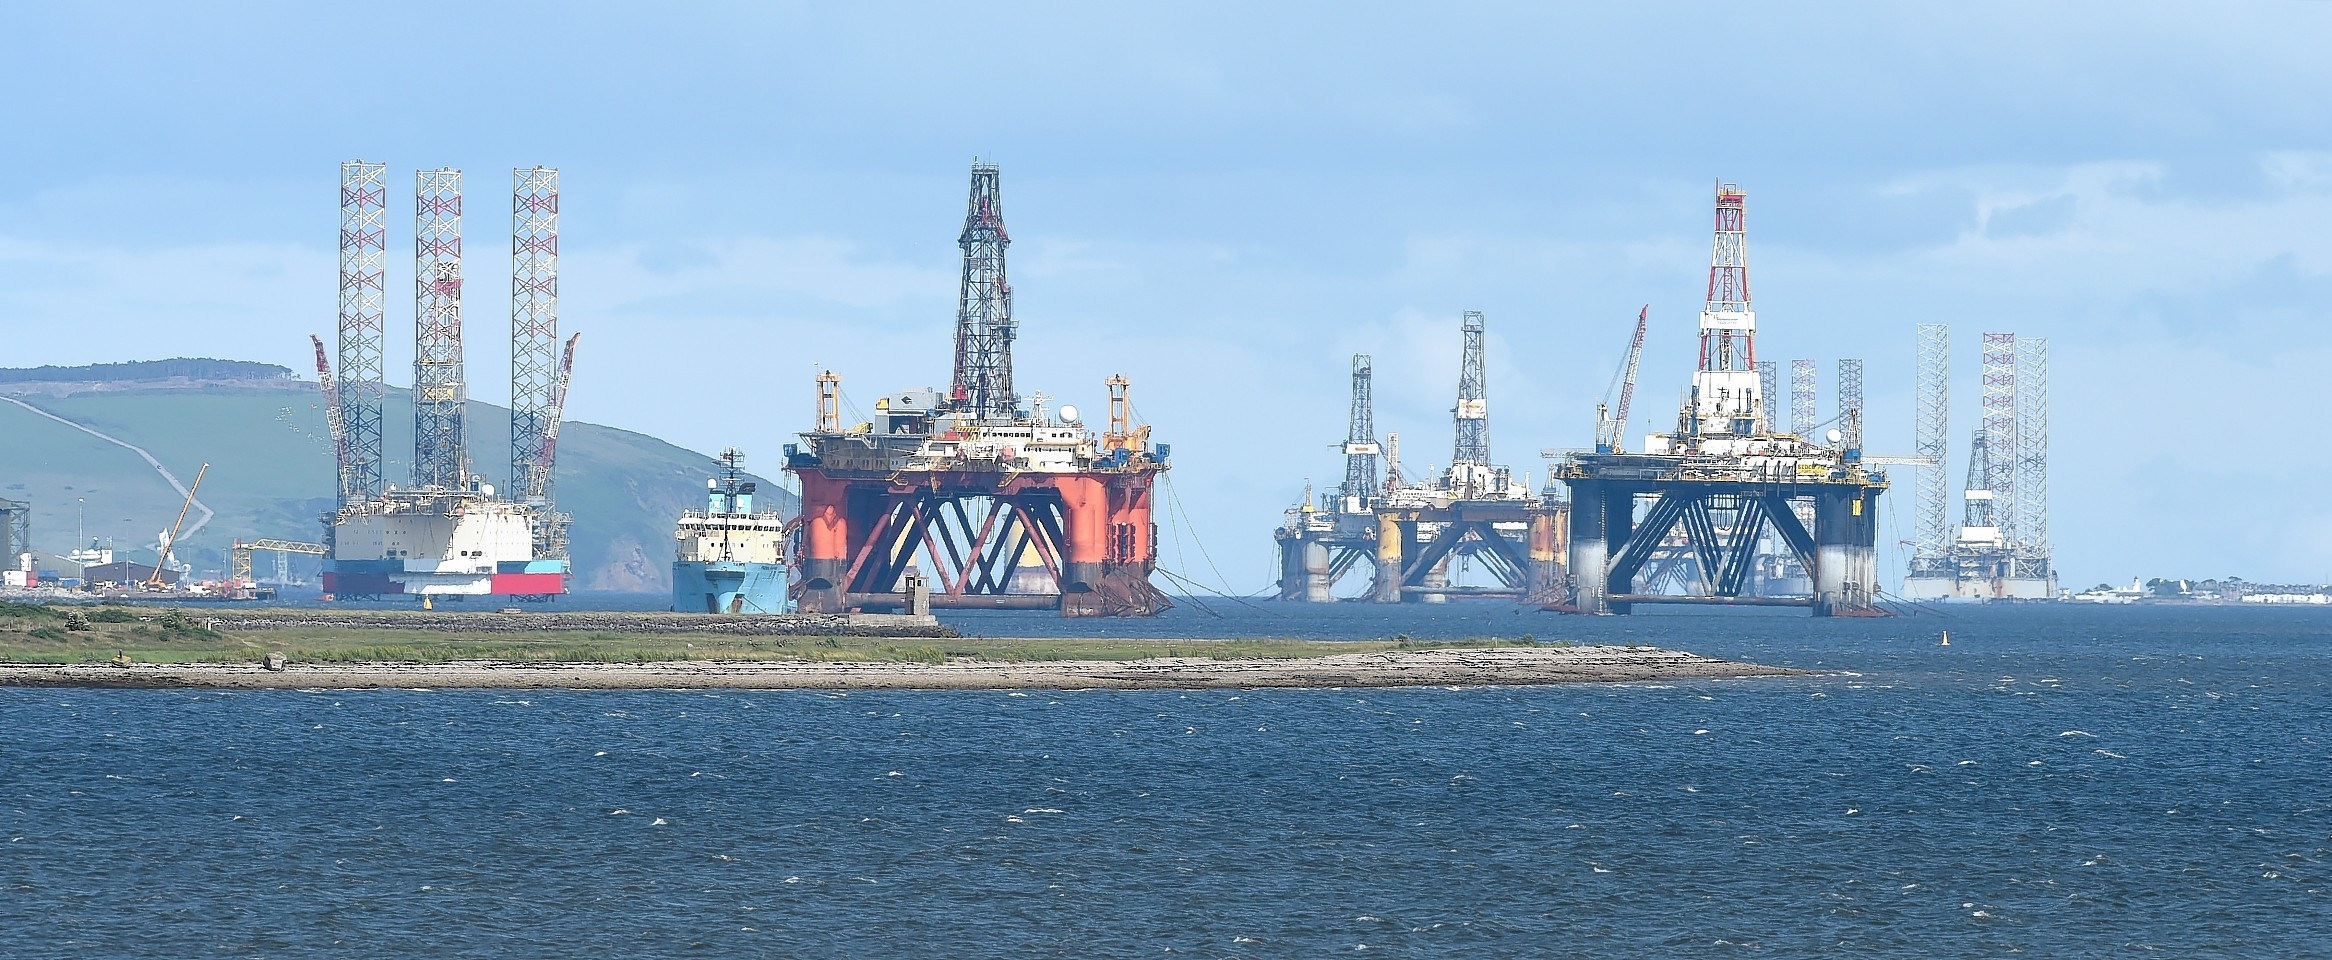 Oil rigs stacked in the Cromarty Firth